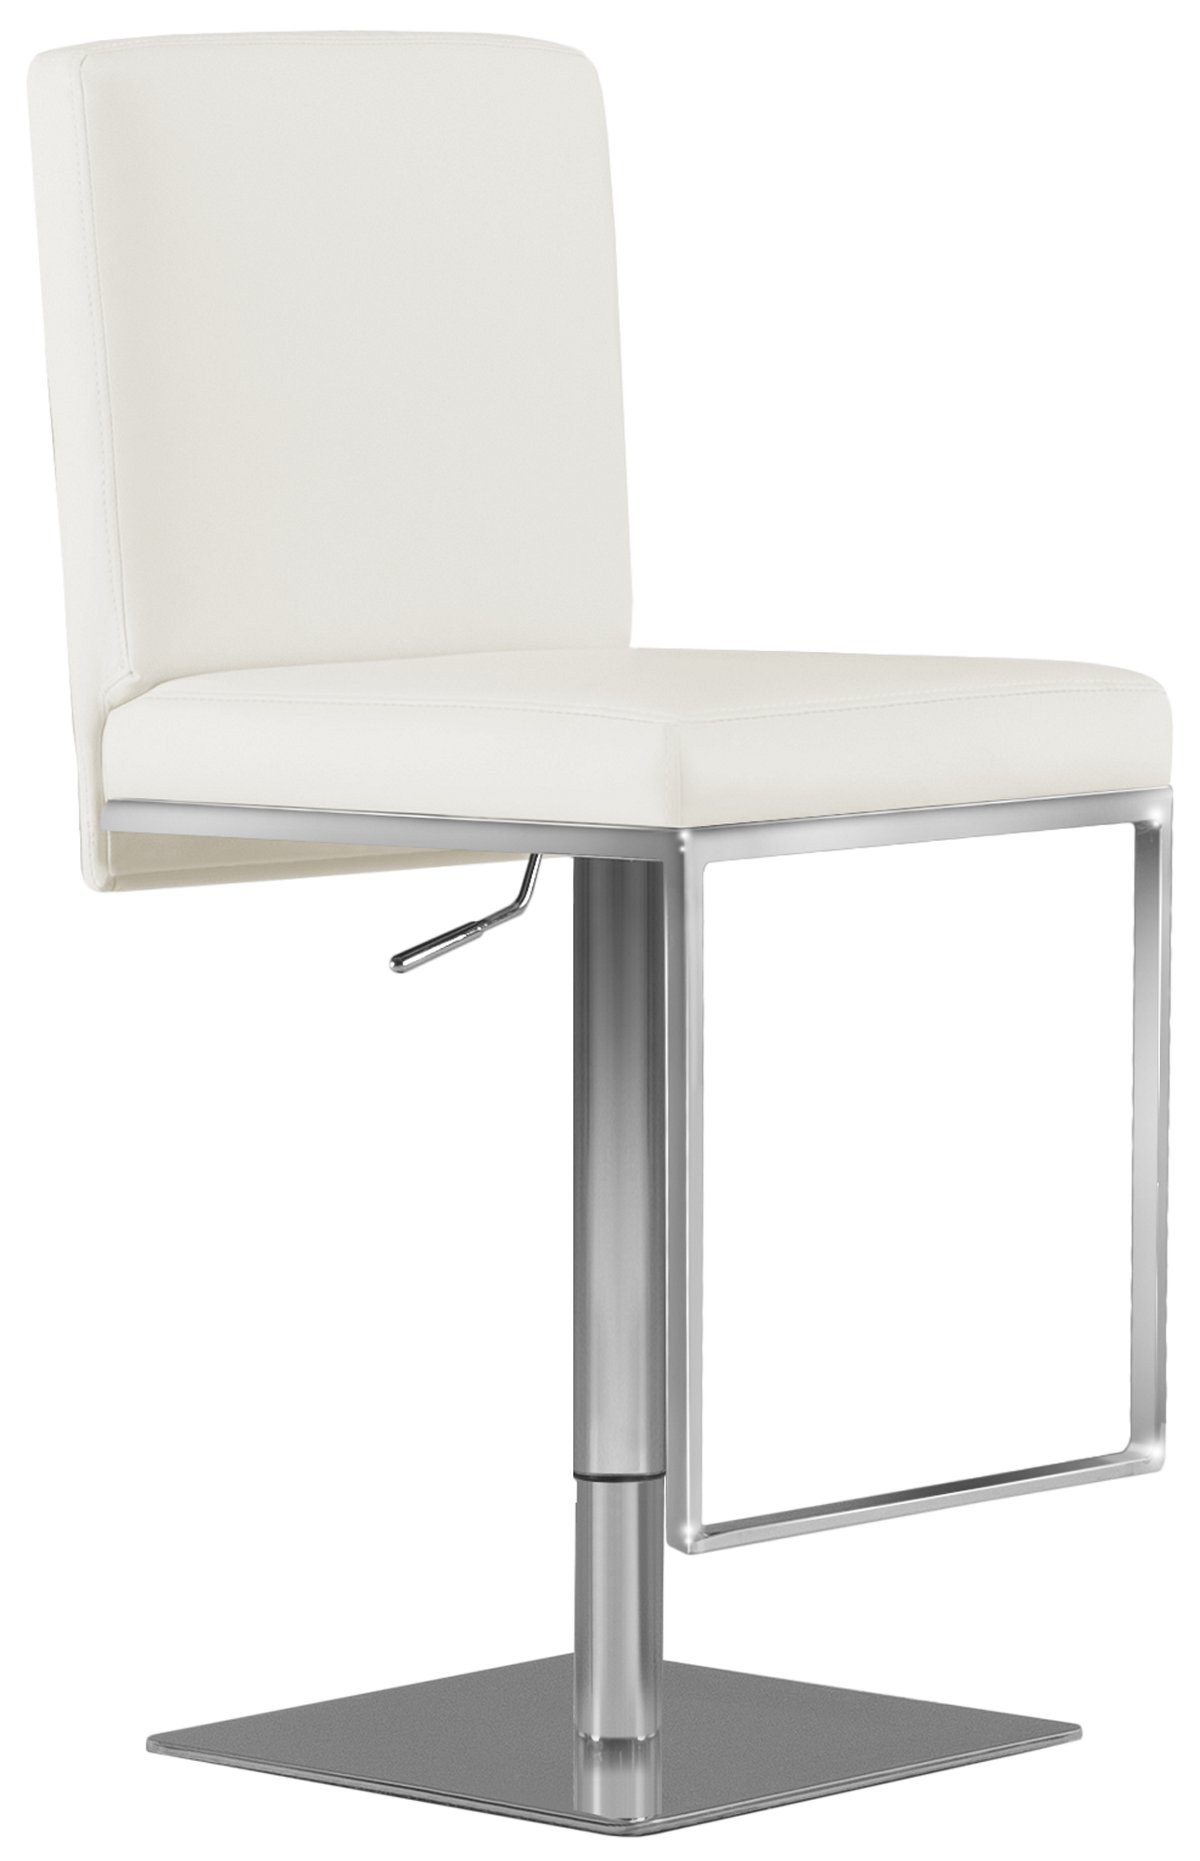 Berlin White Upholstered Adjustable Stool